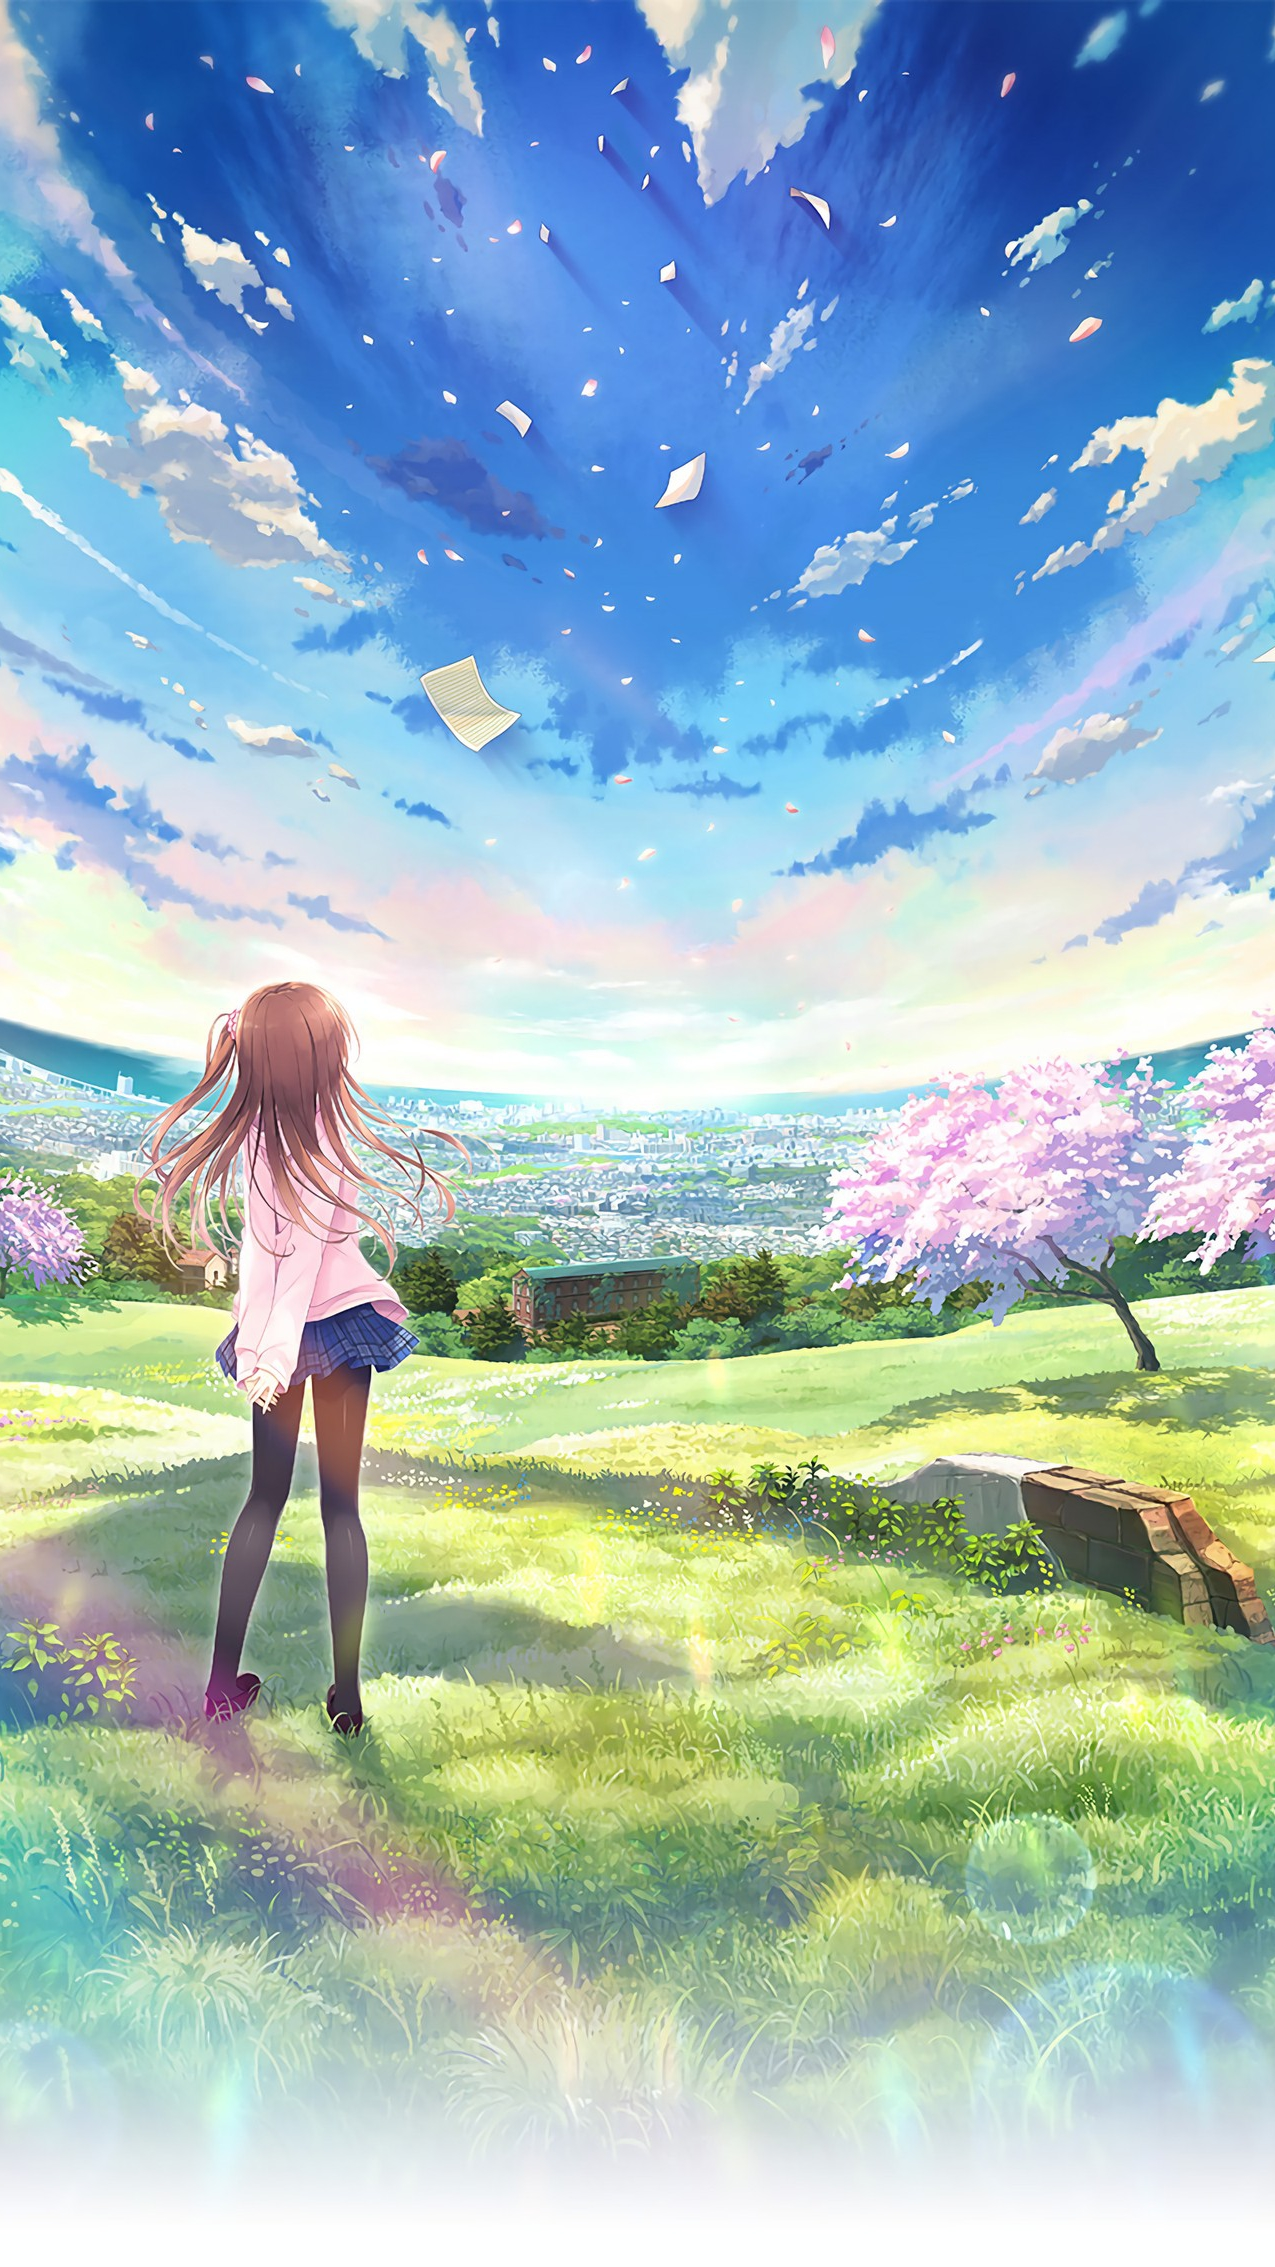 Anime world beautiful girl sky iphone wallpaper iphone - Beautiful girl anime wallpaper ...